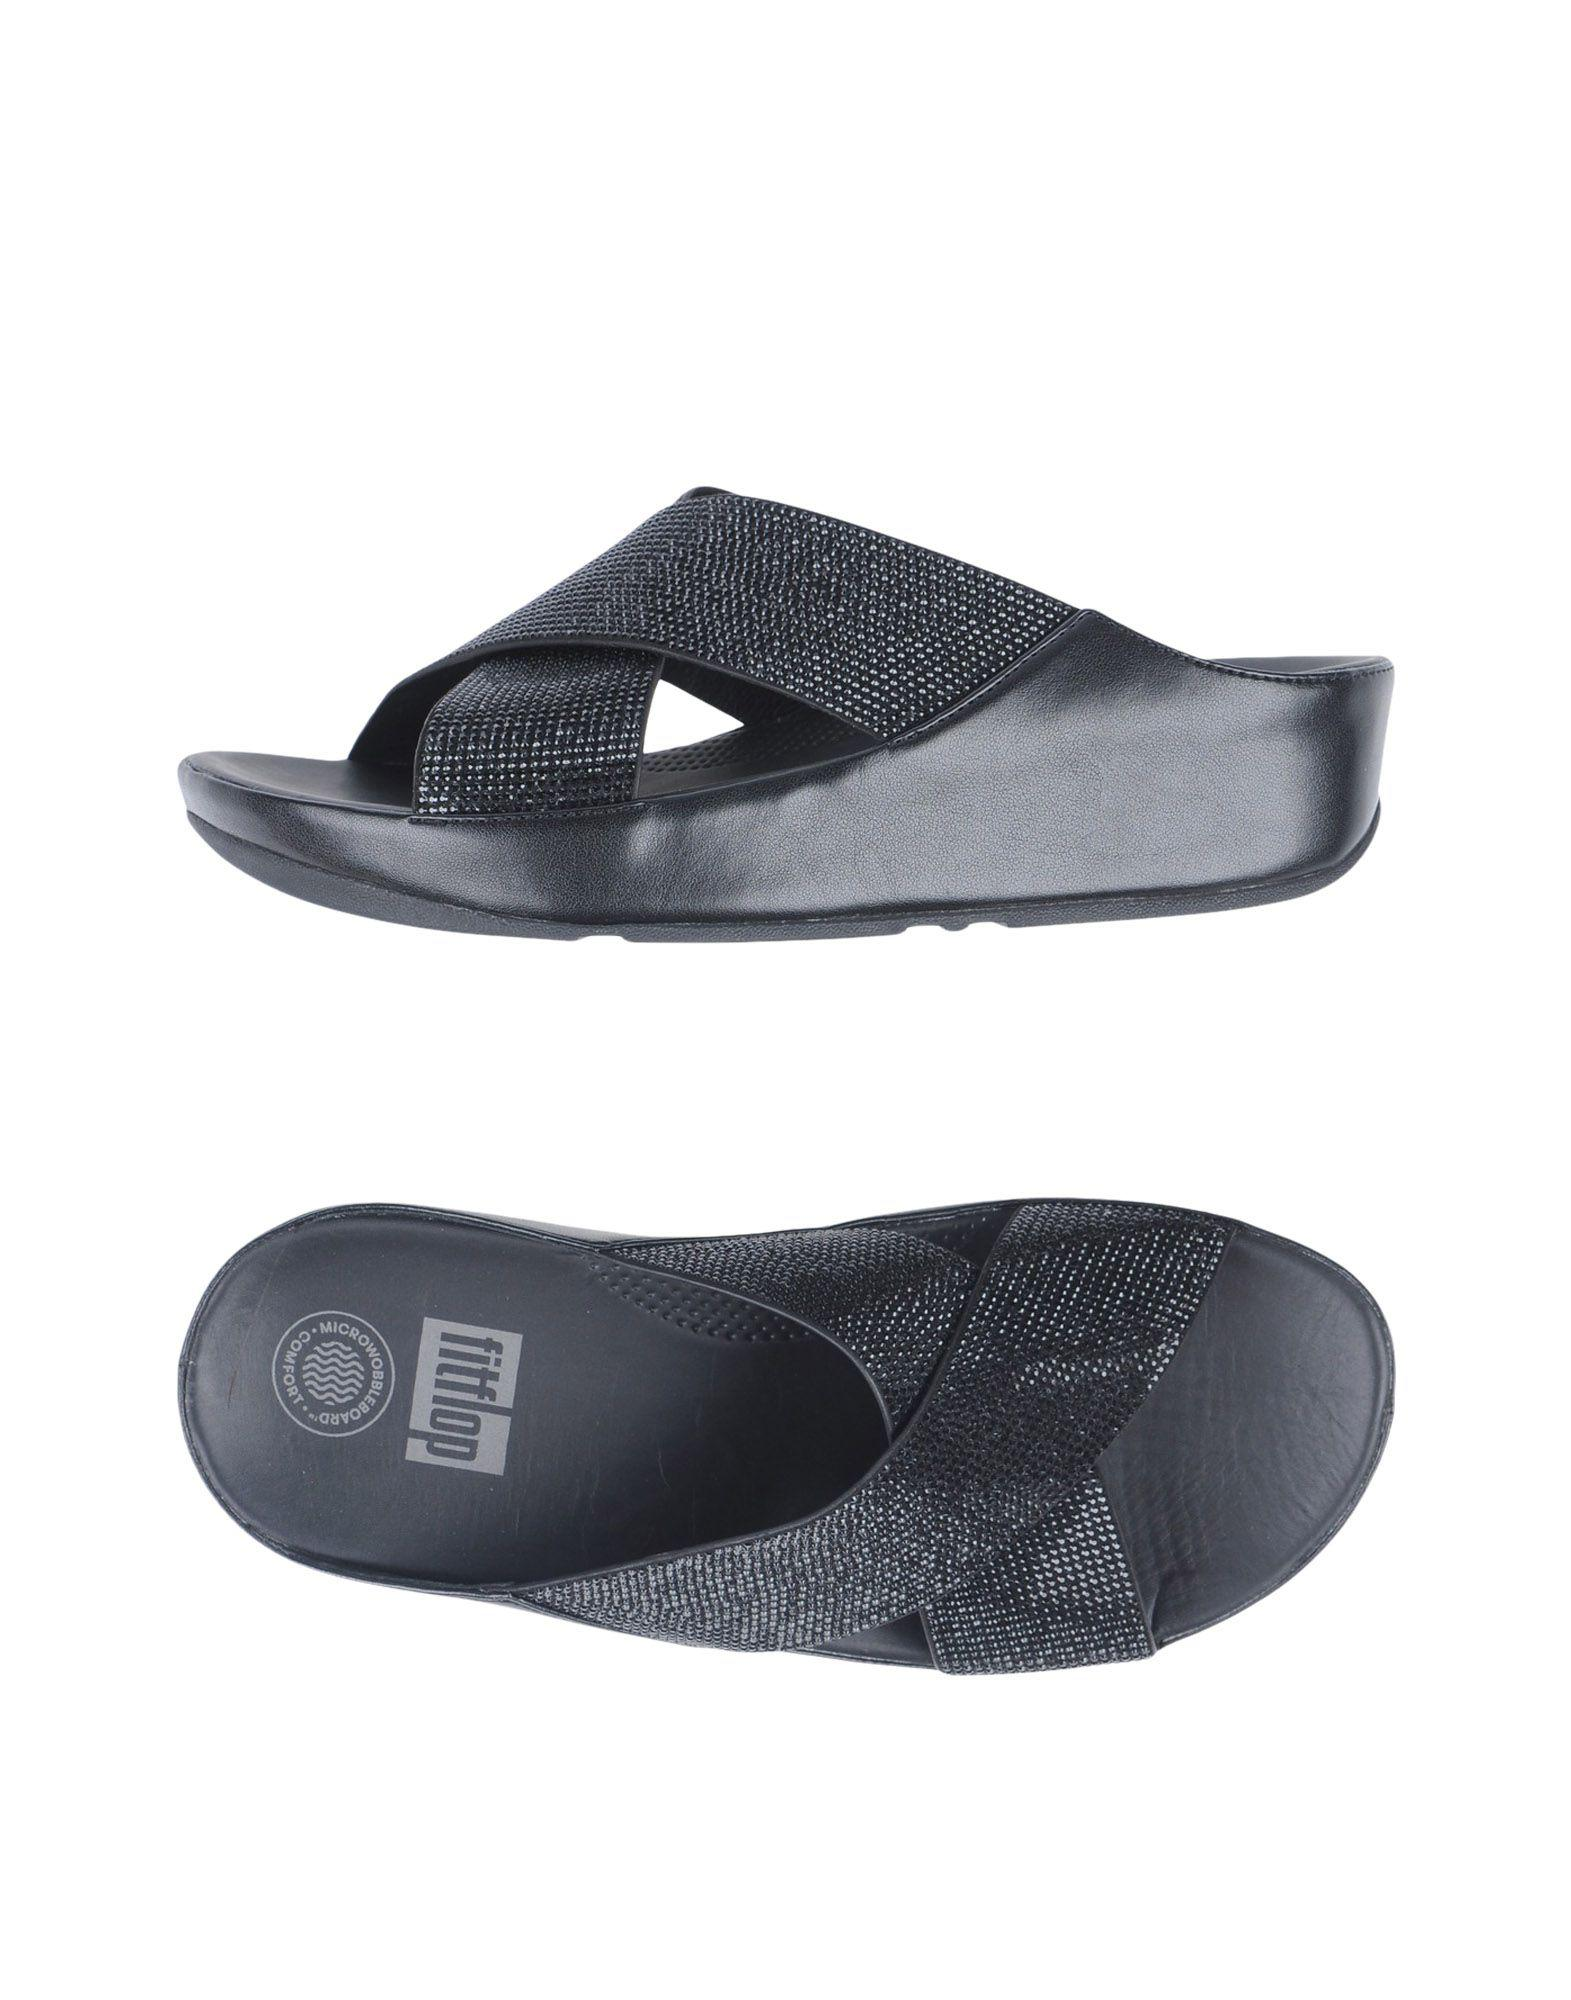 dced6863bebd2f Lyst - Fitflop Sandals in Black